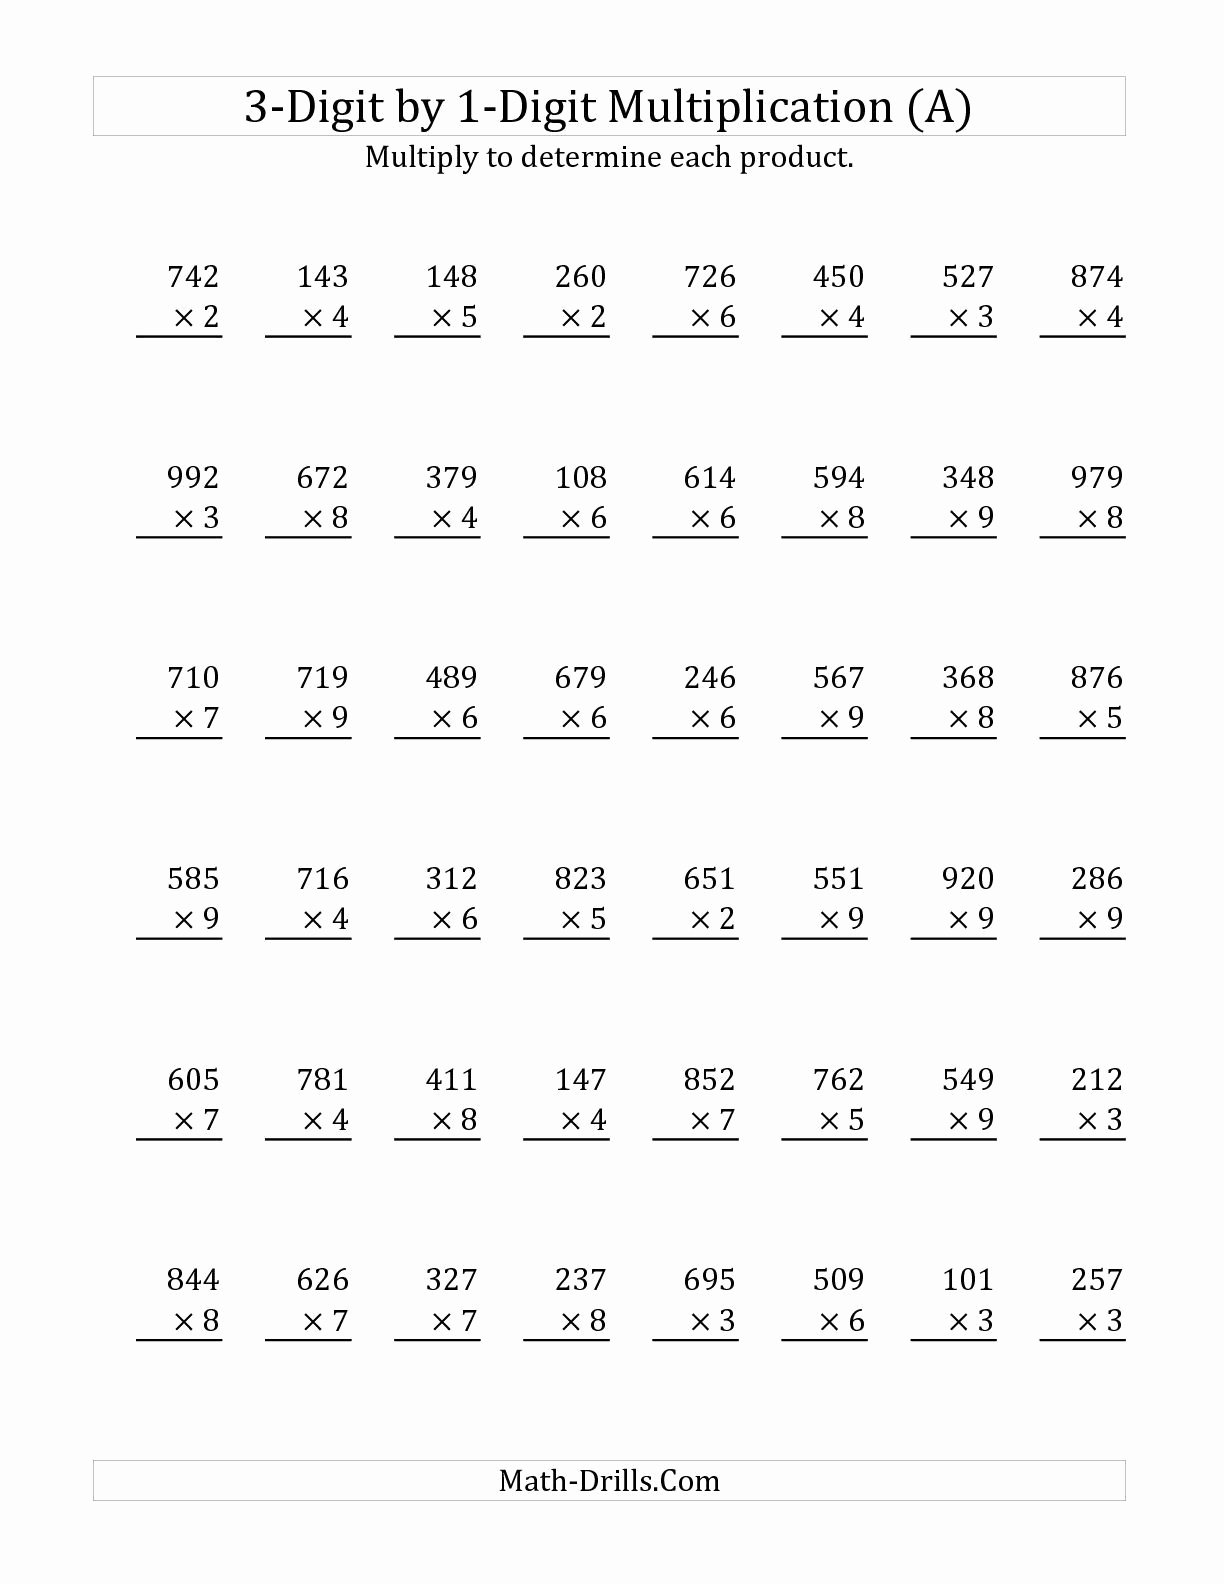 3 by 3 Multiplication Worksheets Fresh 3 Digit by 1 Digit Multiplication A Long Multiplication